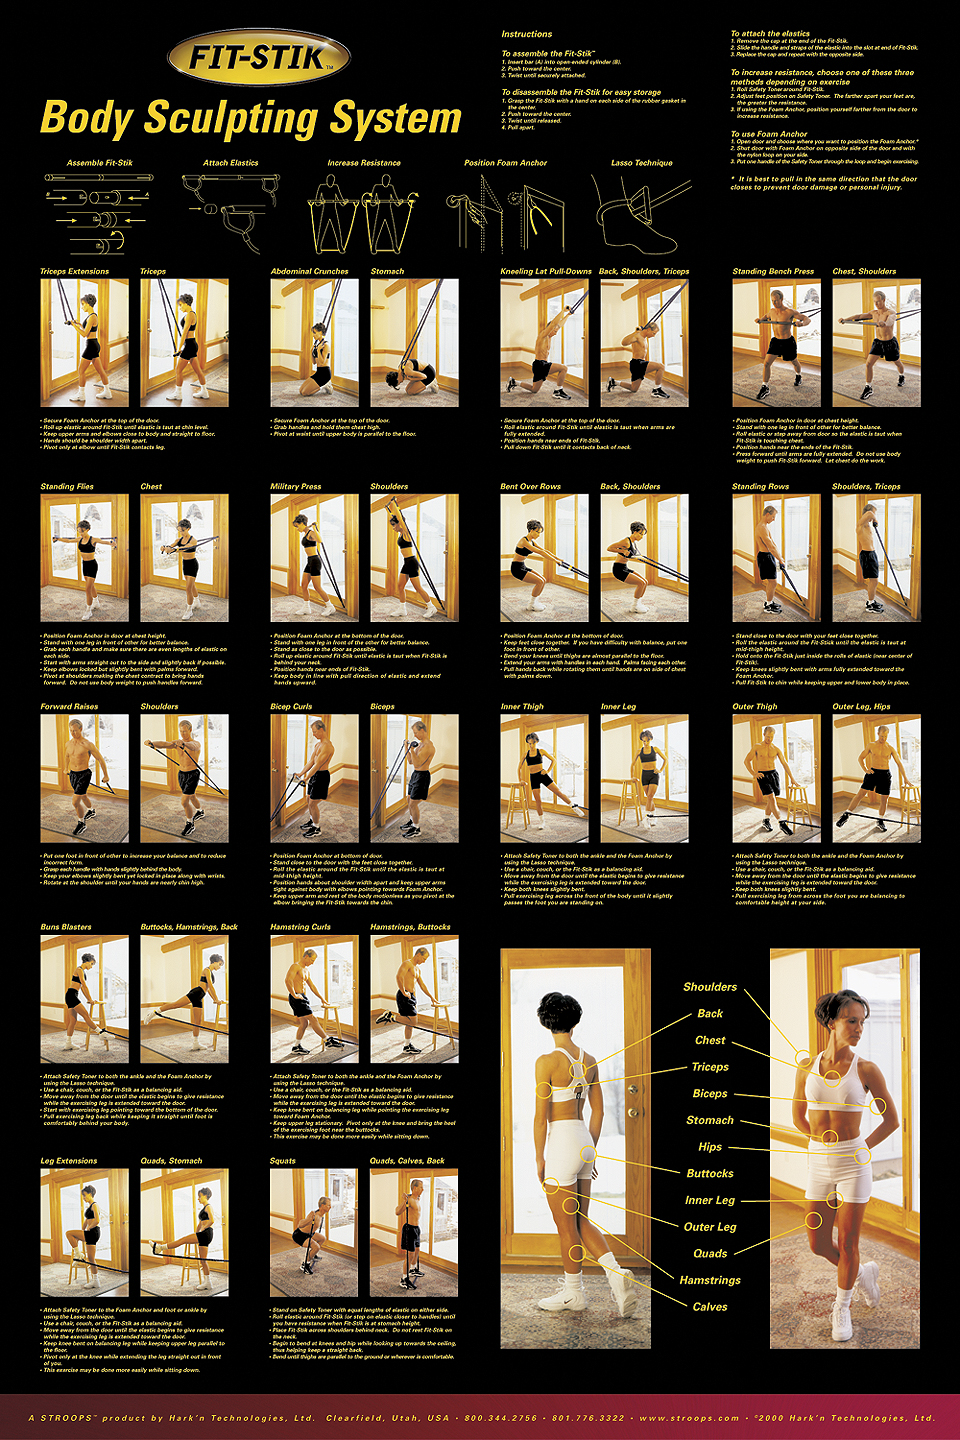 Pilates ball exercises information on happy healthy news - Free Dumbbell Workout Poster Information On Happy Healthy News